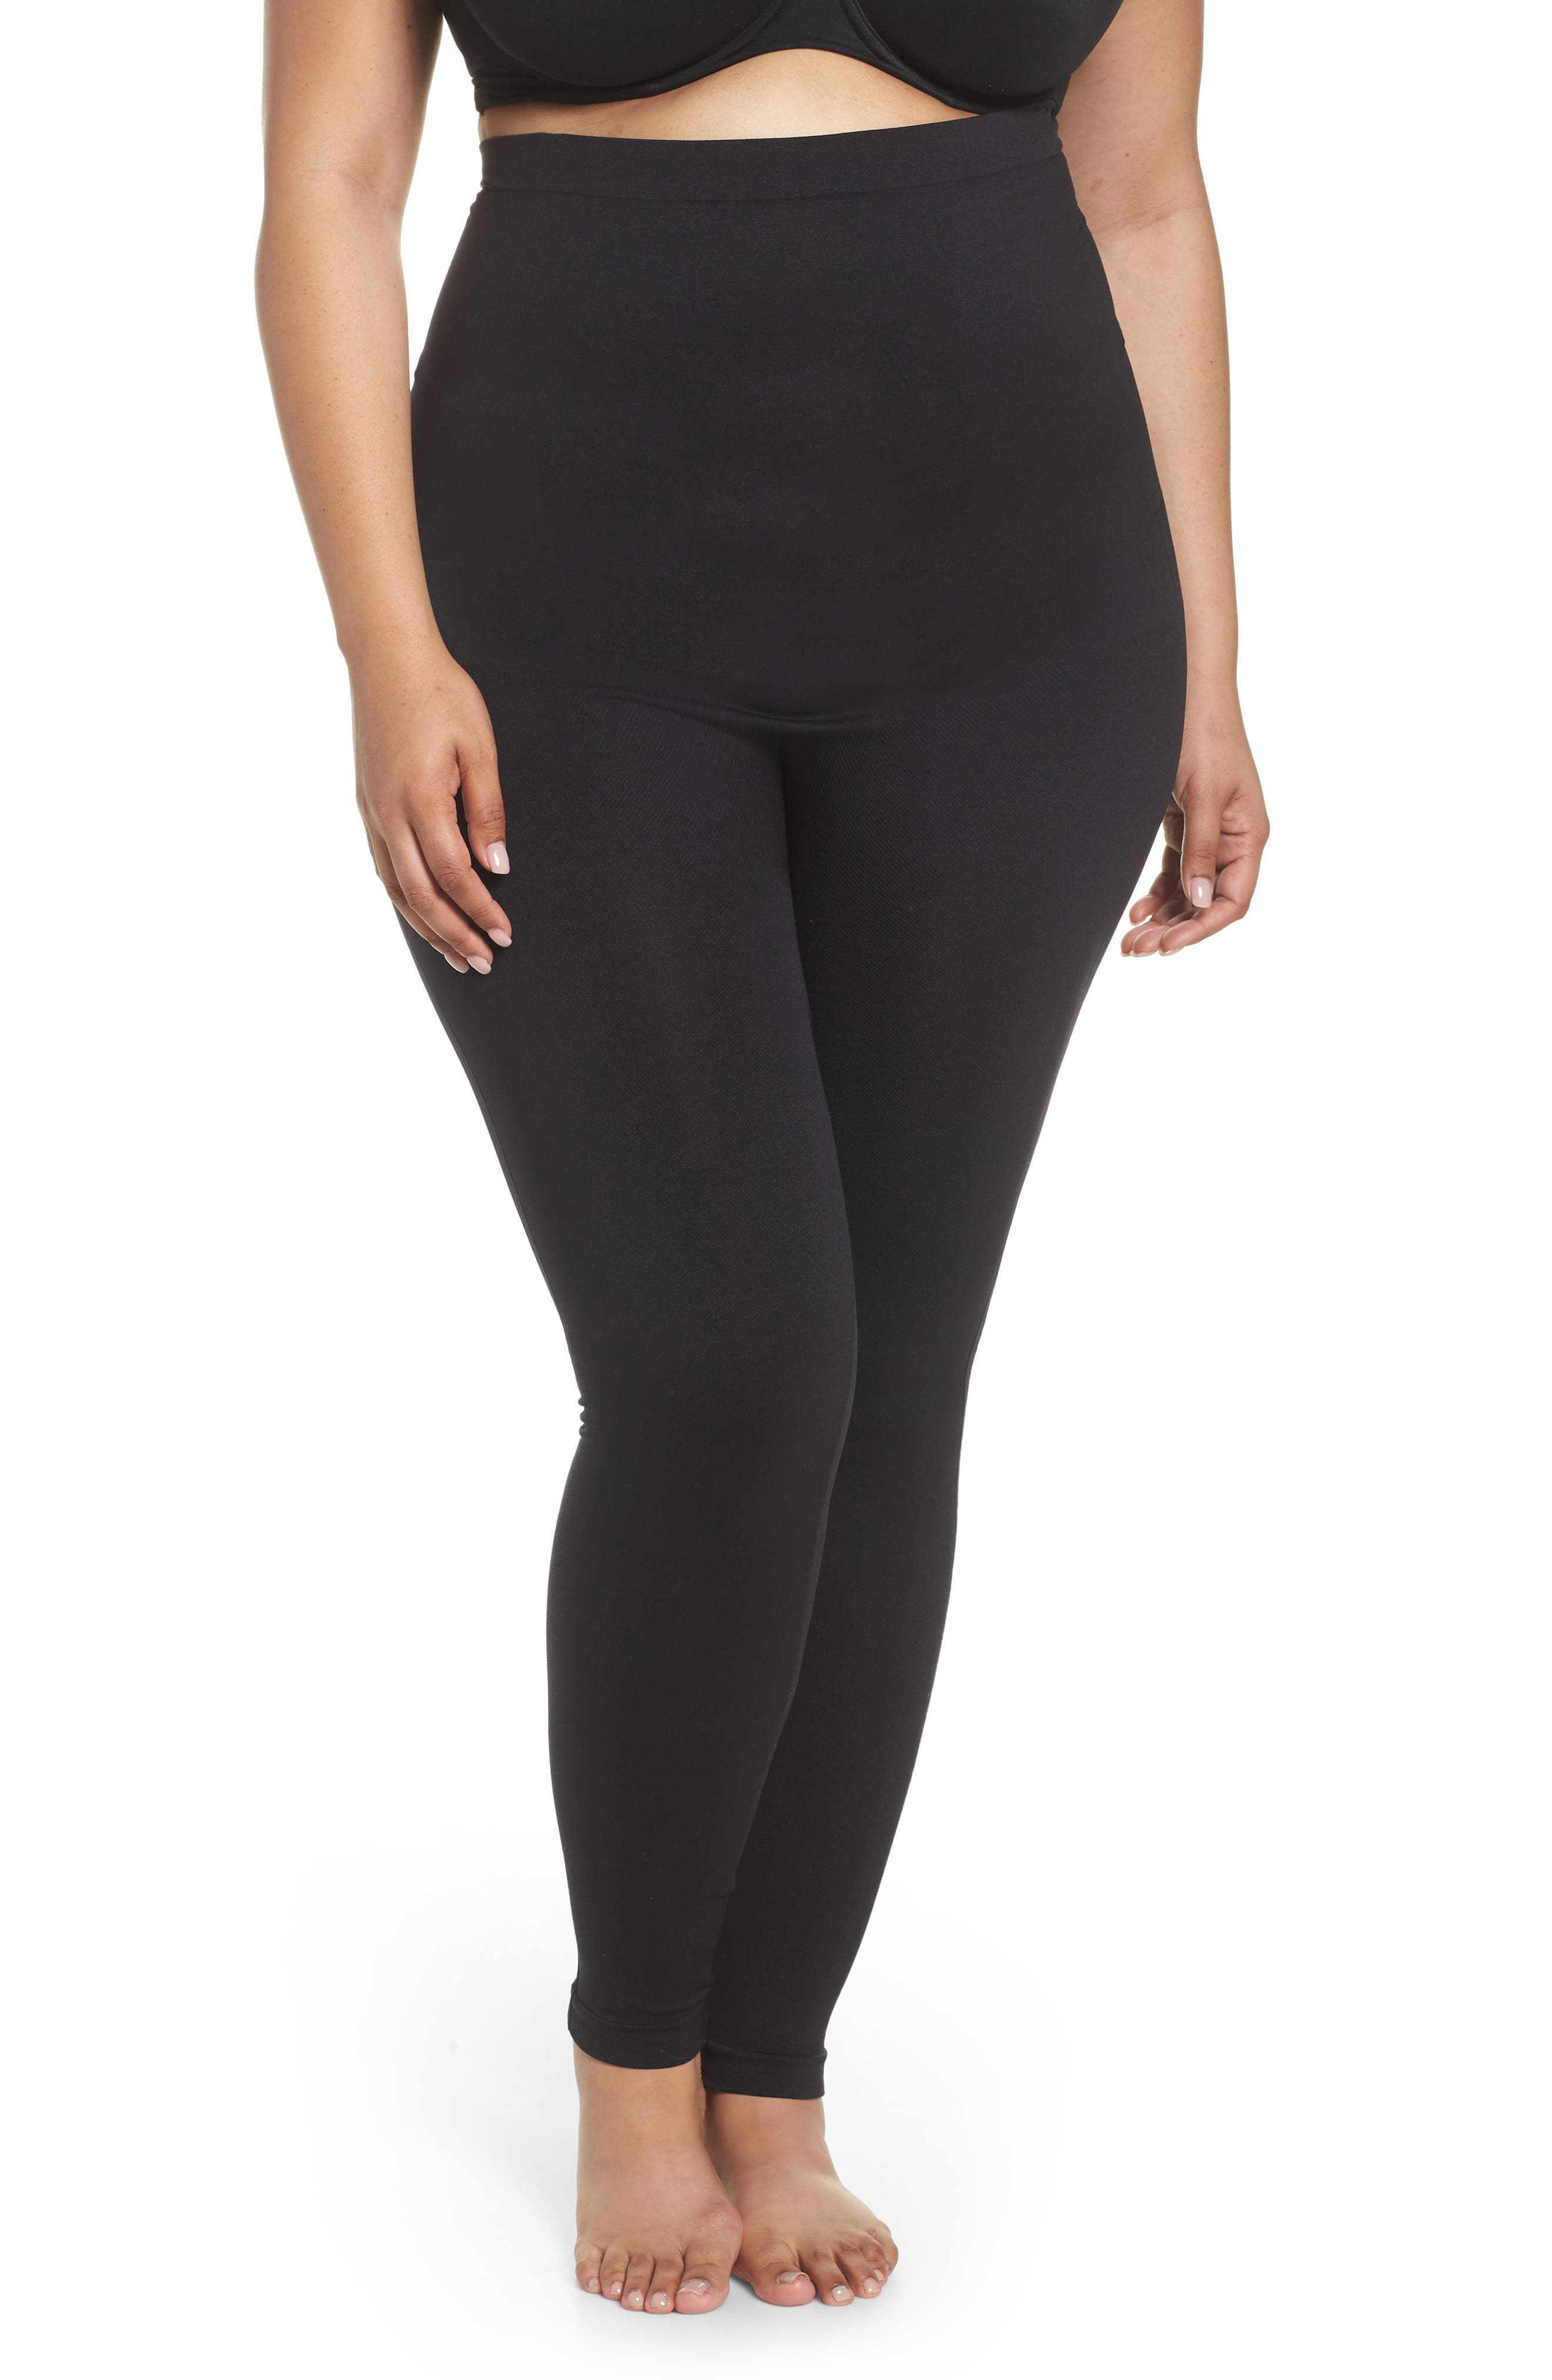 Look At Me Now Seamless Leggings,                         Main,                         color, VERY BLACK